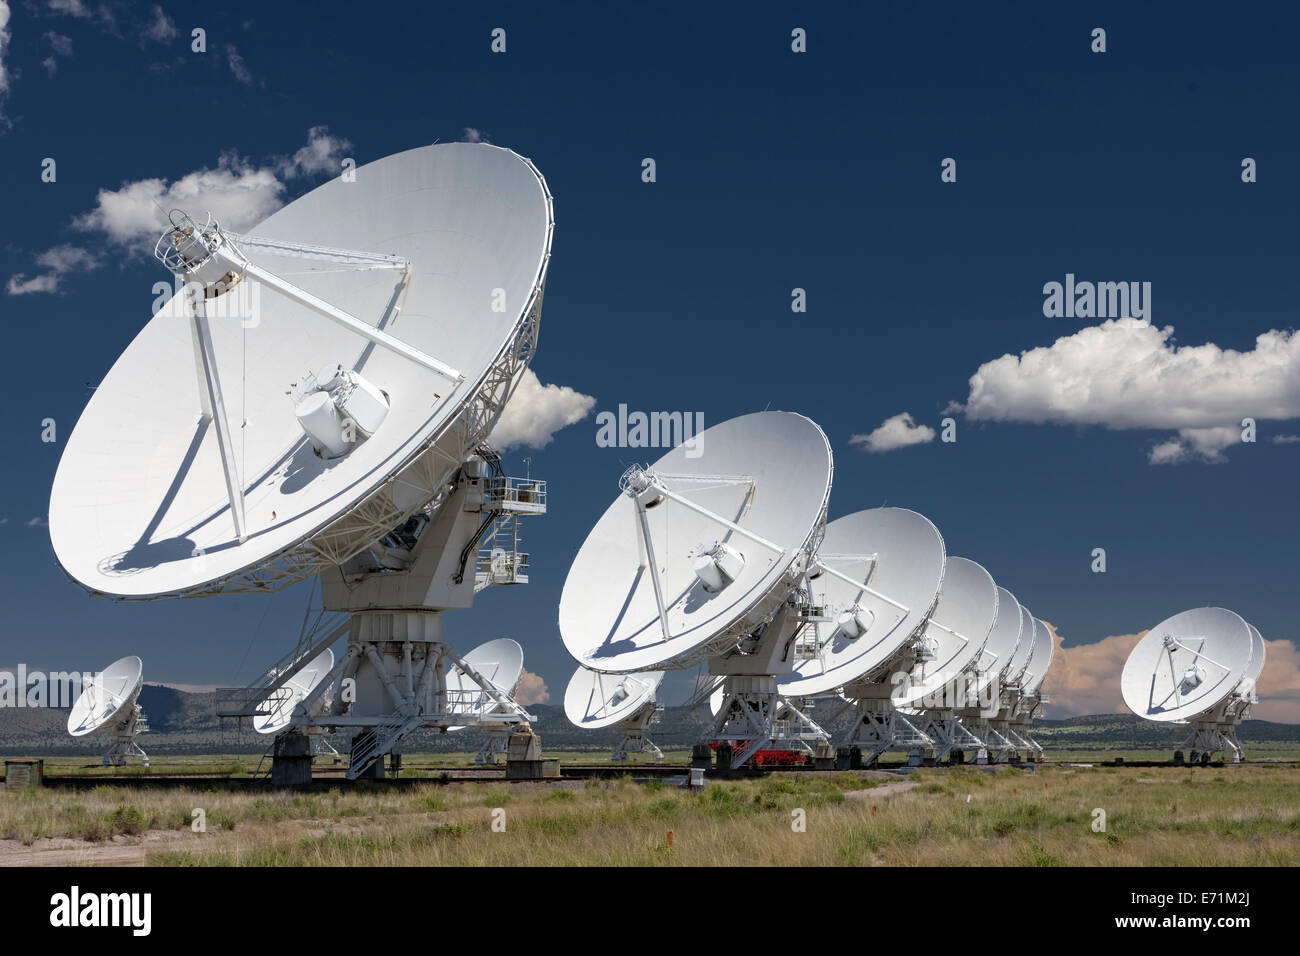 The VLA - Very Large Array - Radio Telescope in Socorro, New Mexico - Stock Image